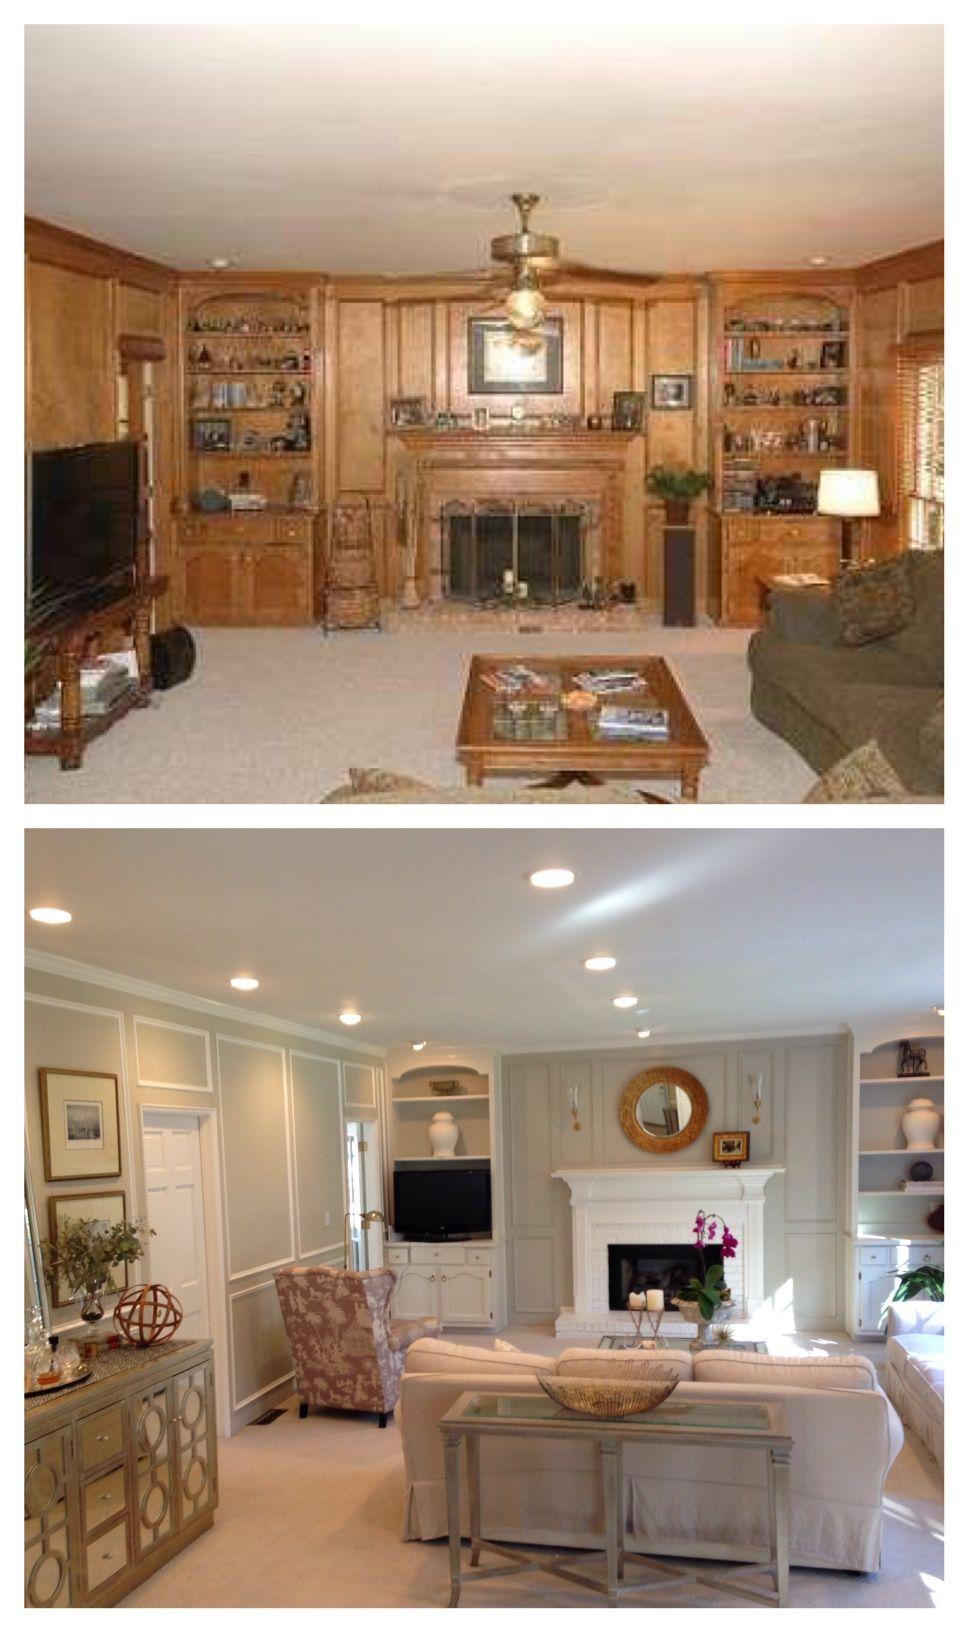 Living room before and after paneling painted updated Paneling makeover ideas